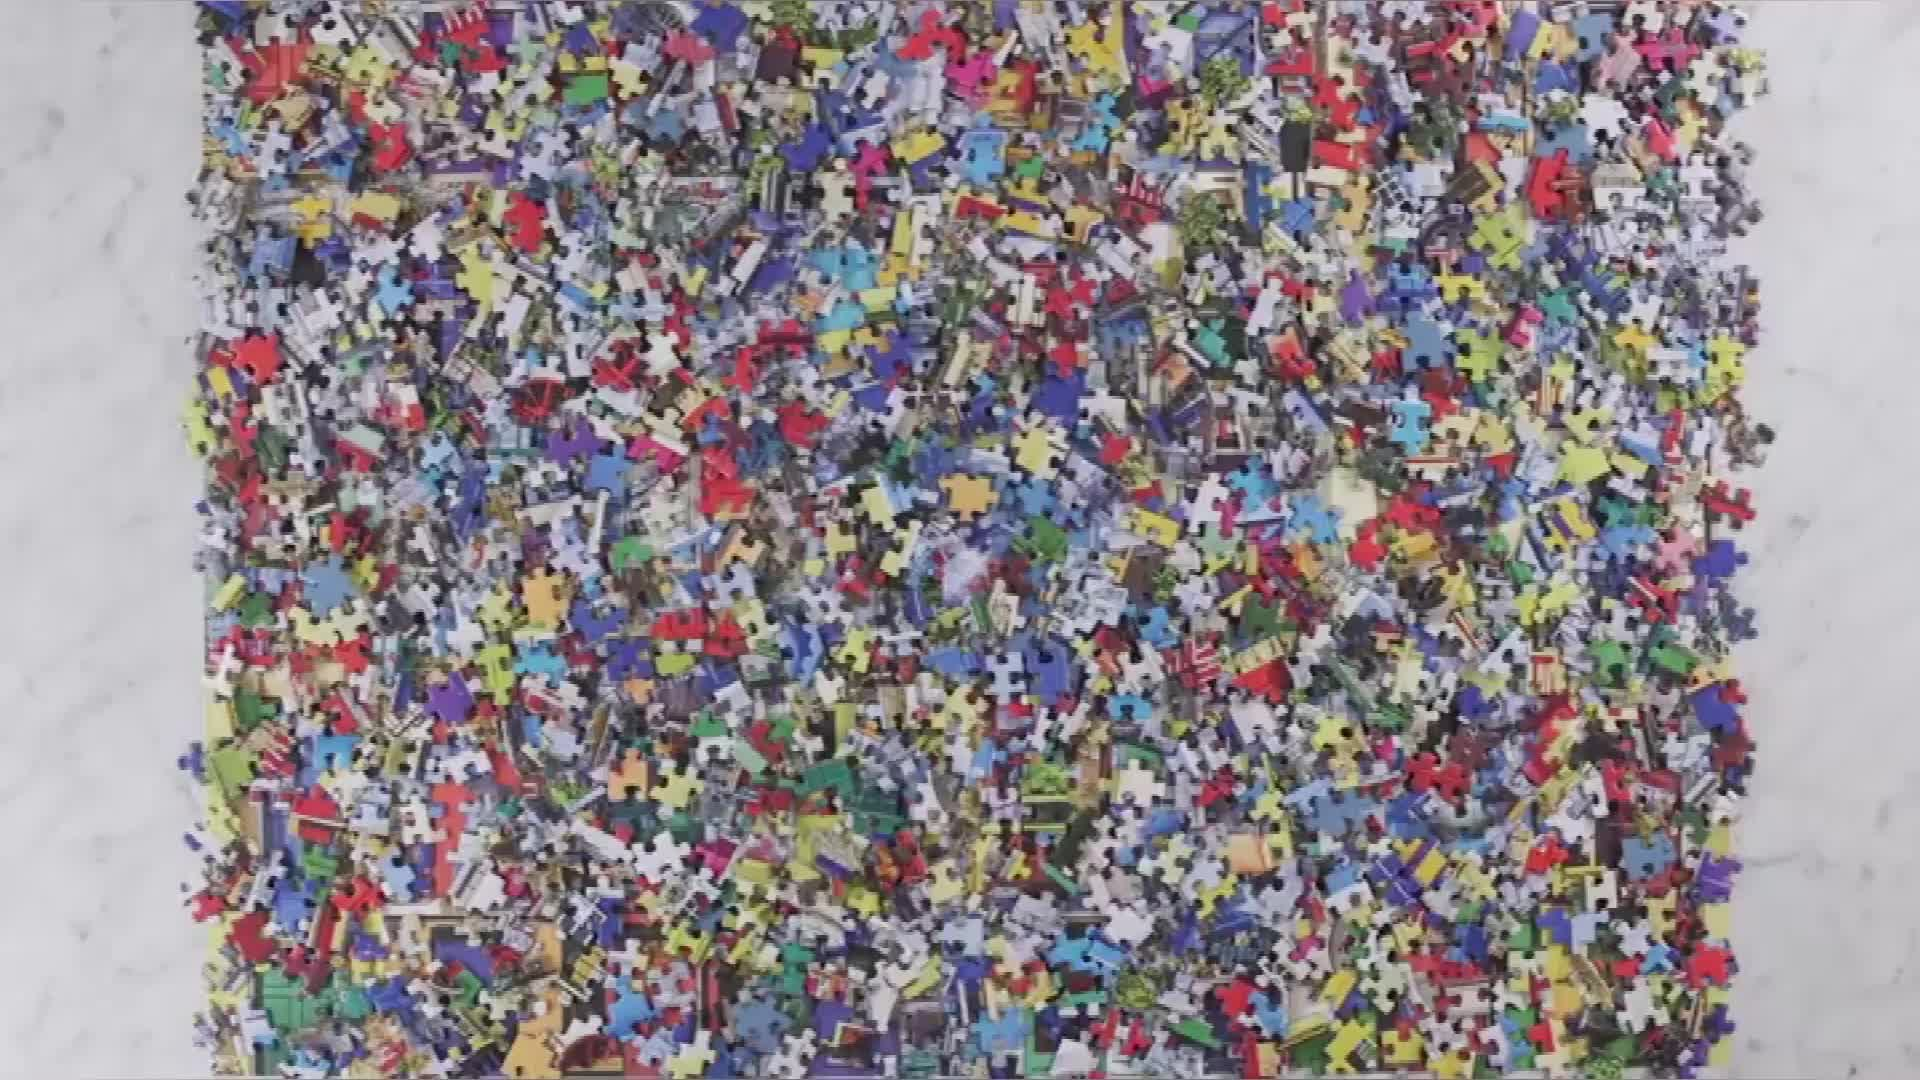 Custom 1000 Pieces Paper Jigsaw Puzzles for Kids and Adult